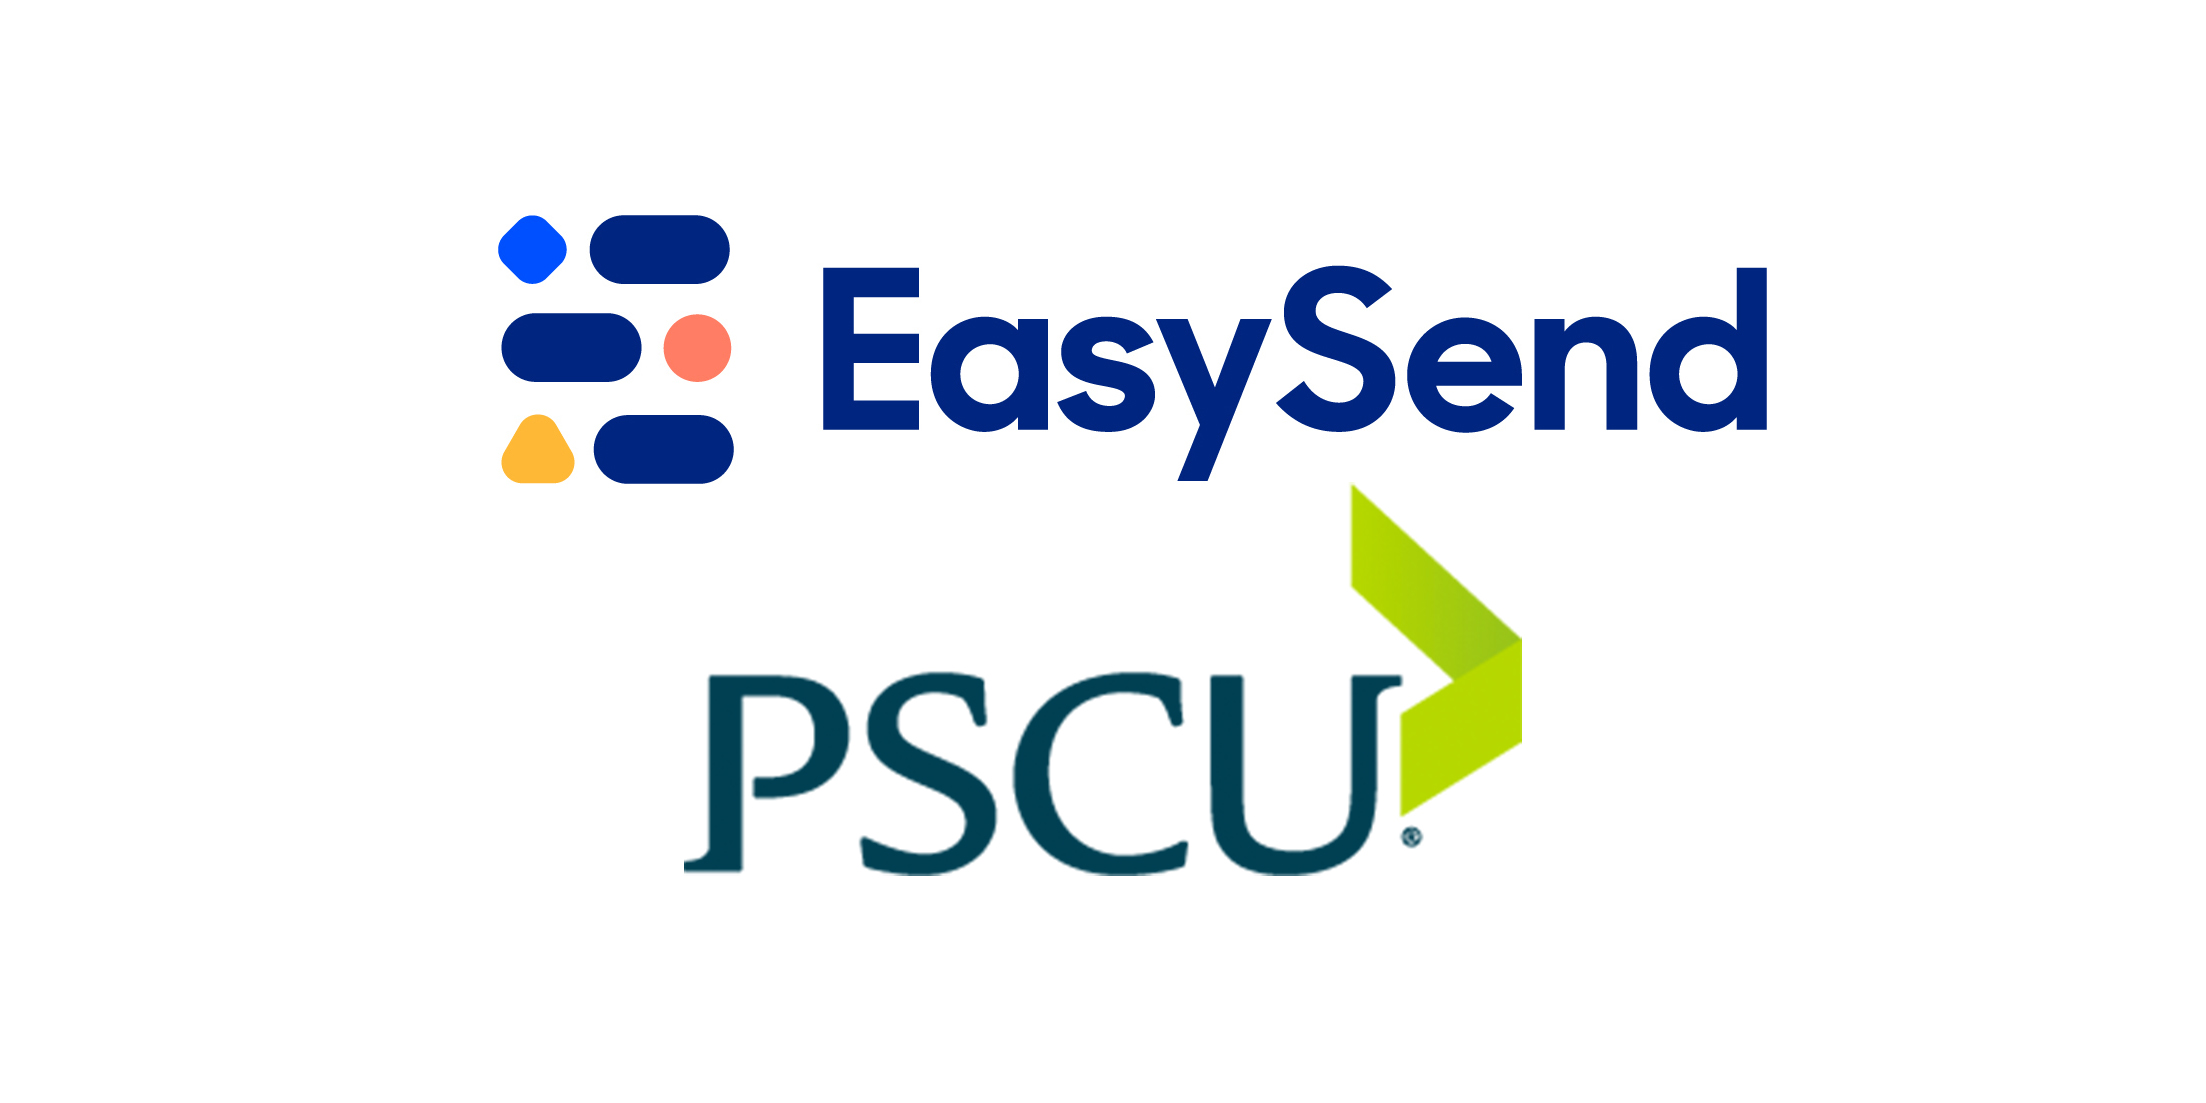 EasySend Partners with PSCU to Swiftly Digitize and Enhance Customer Experience